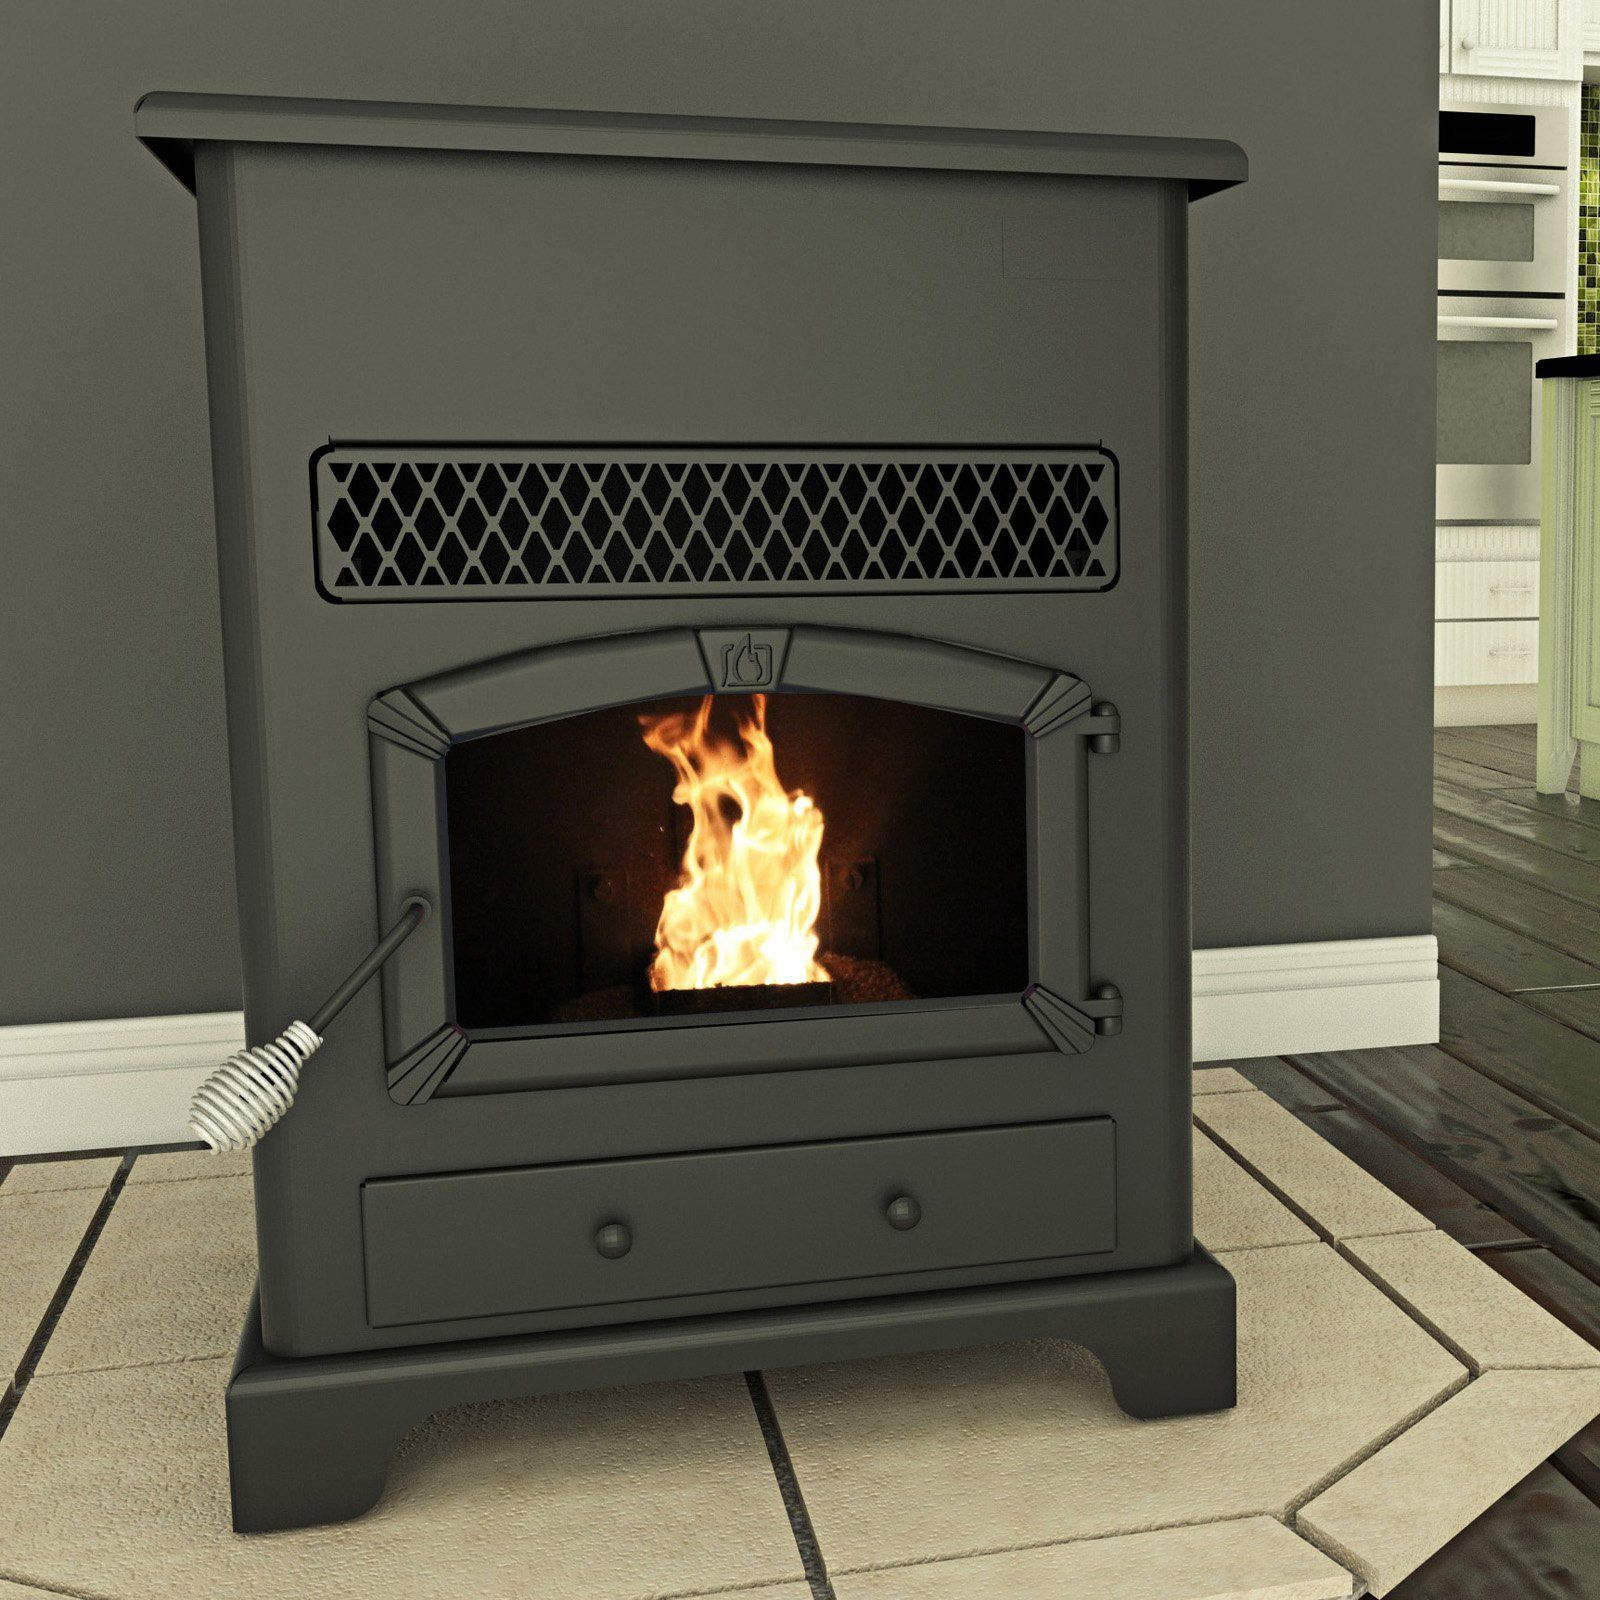 us stove large pellet heater with ash pan 5520 products